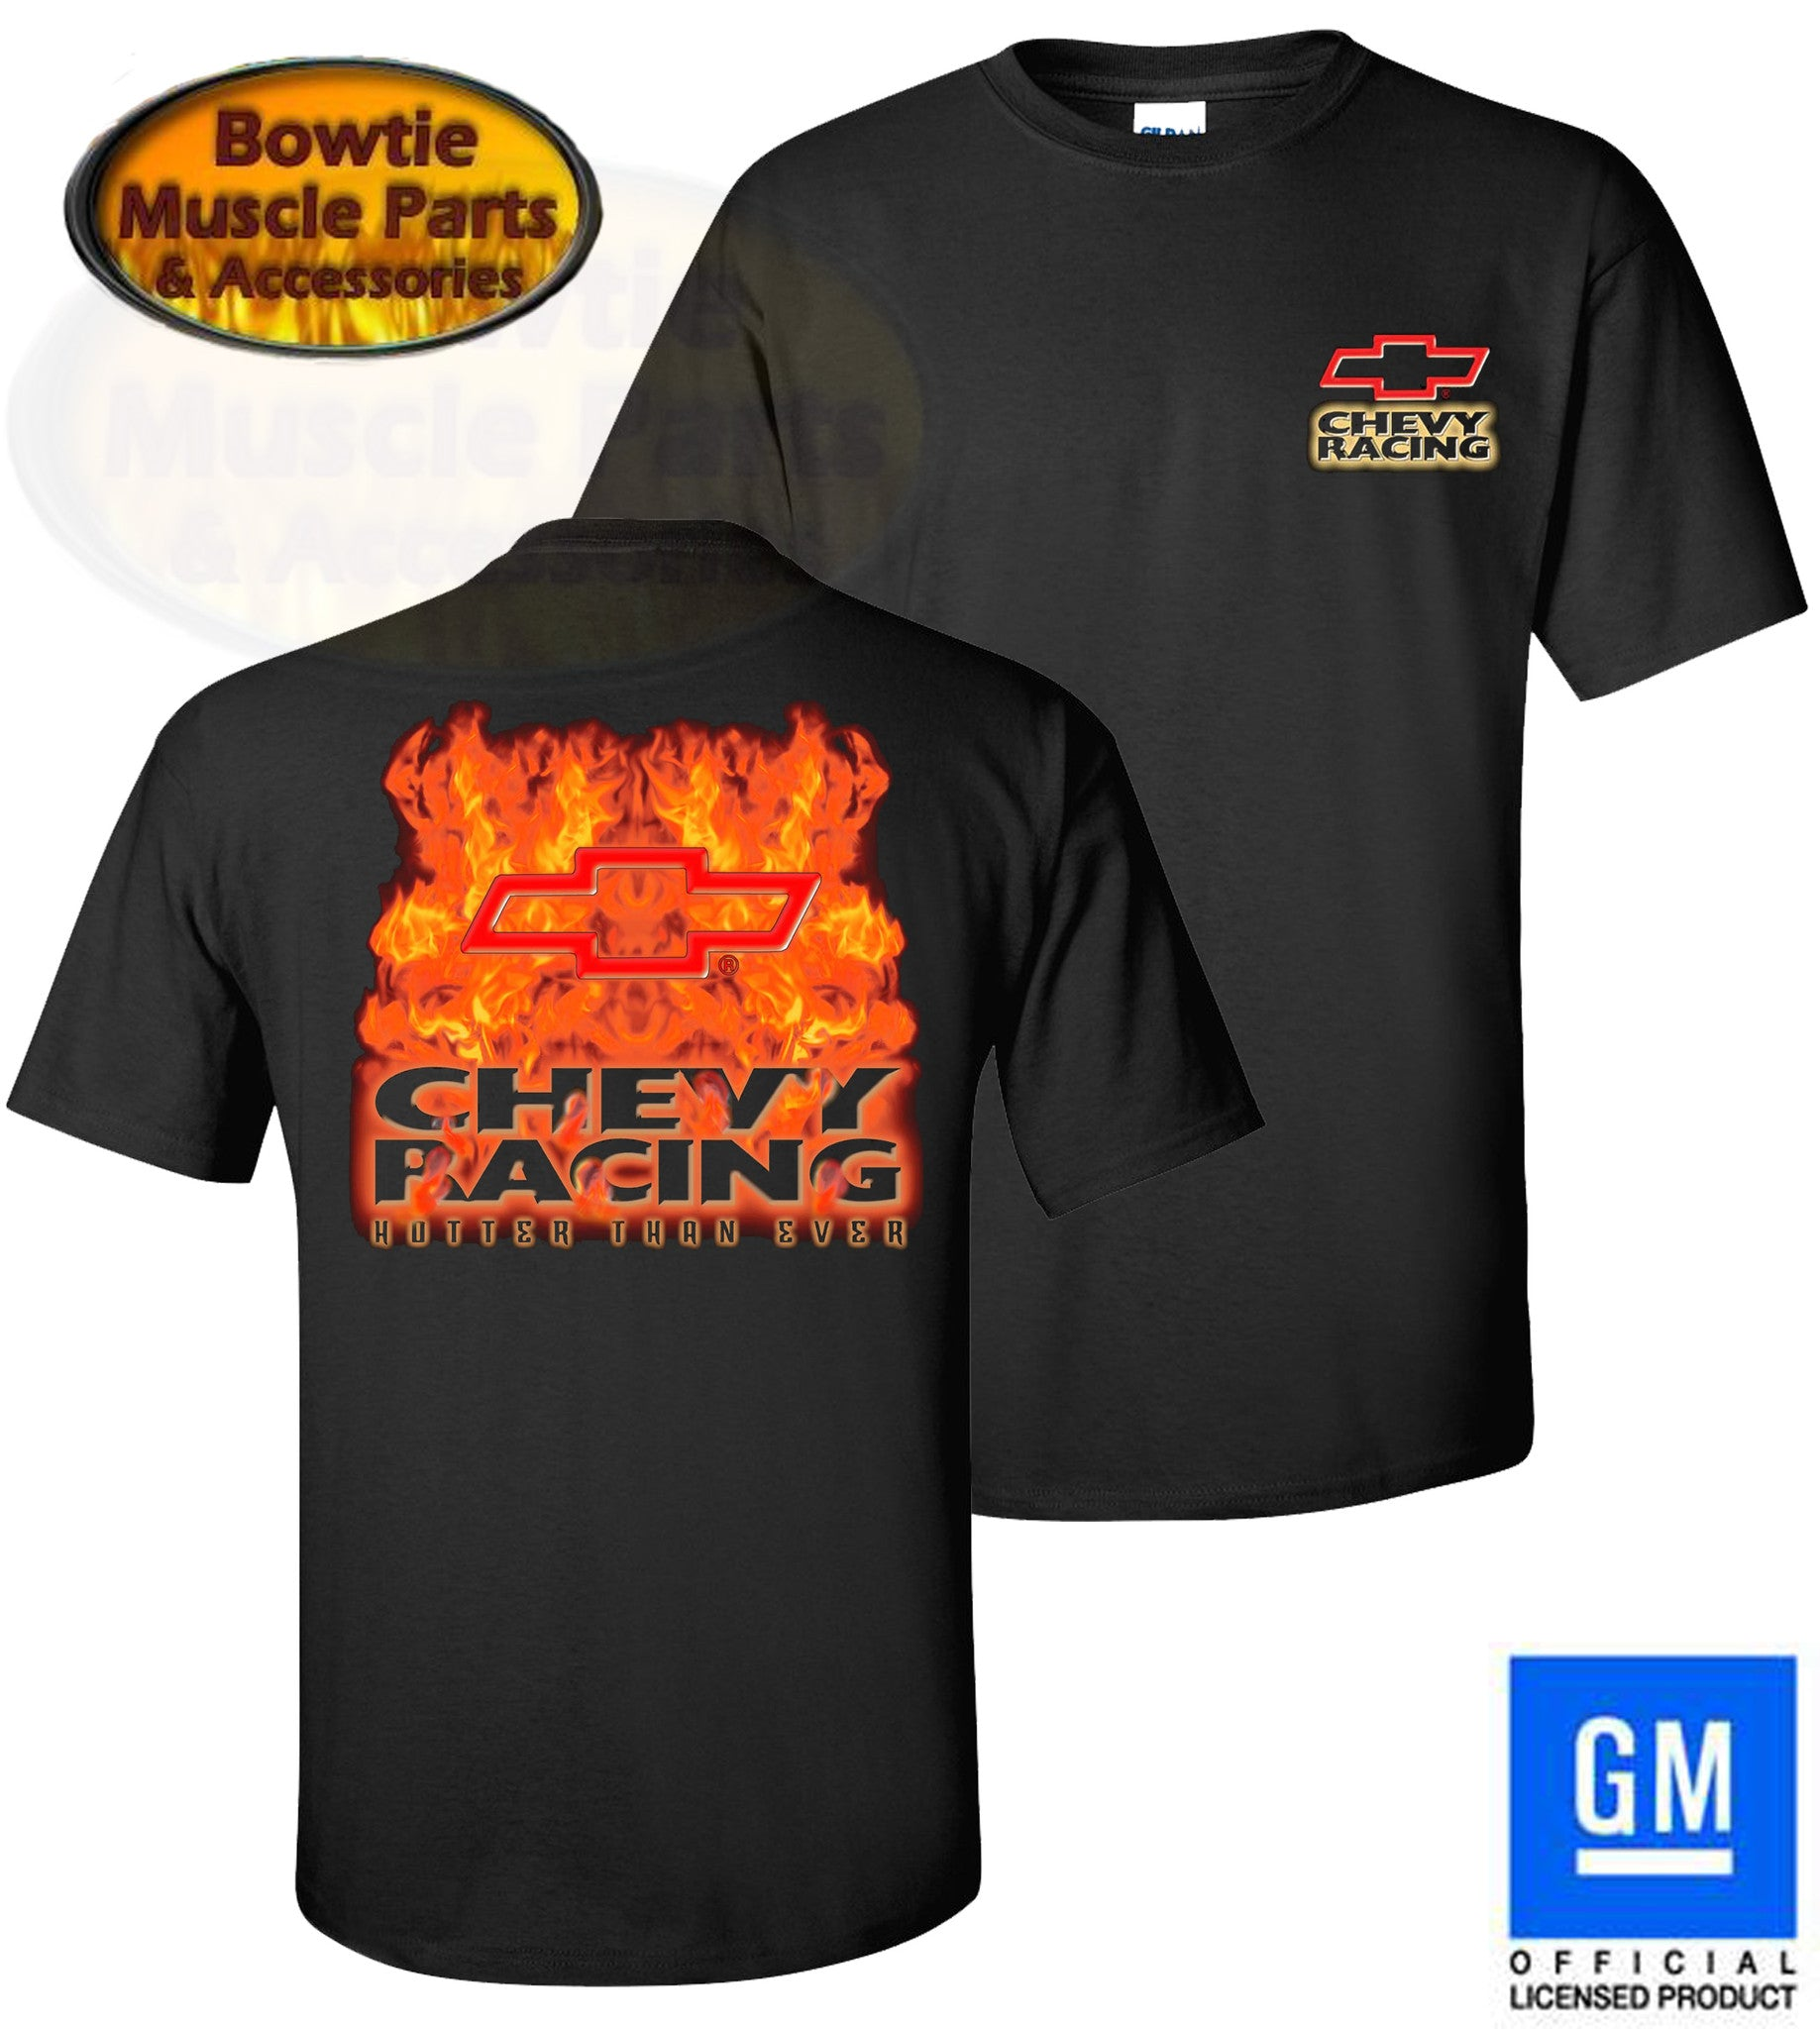 CHEVY RACING HOTTER THAN EVER MONTE CARLO CAMARO NOVA CHEVELLE NASCAR T-SHIRT